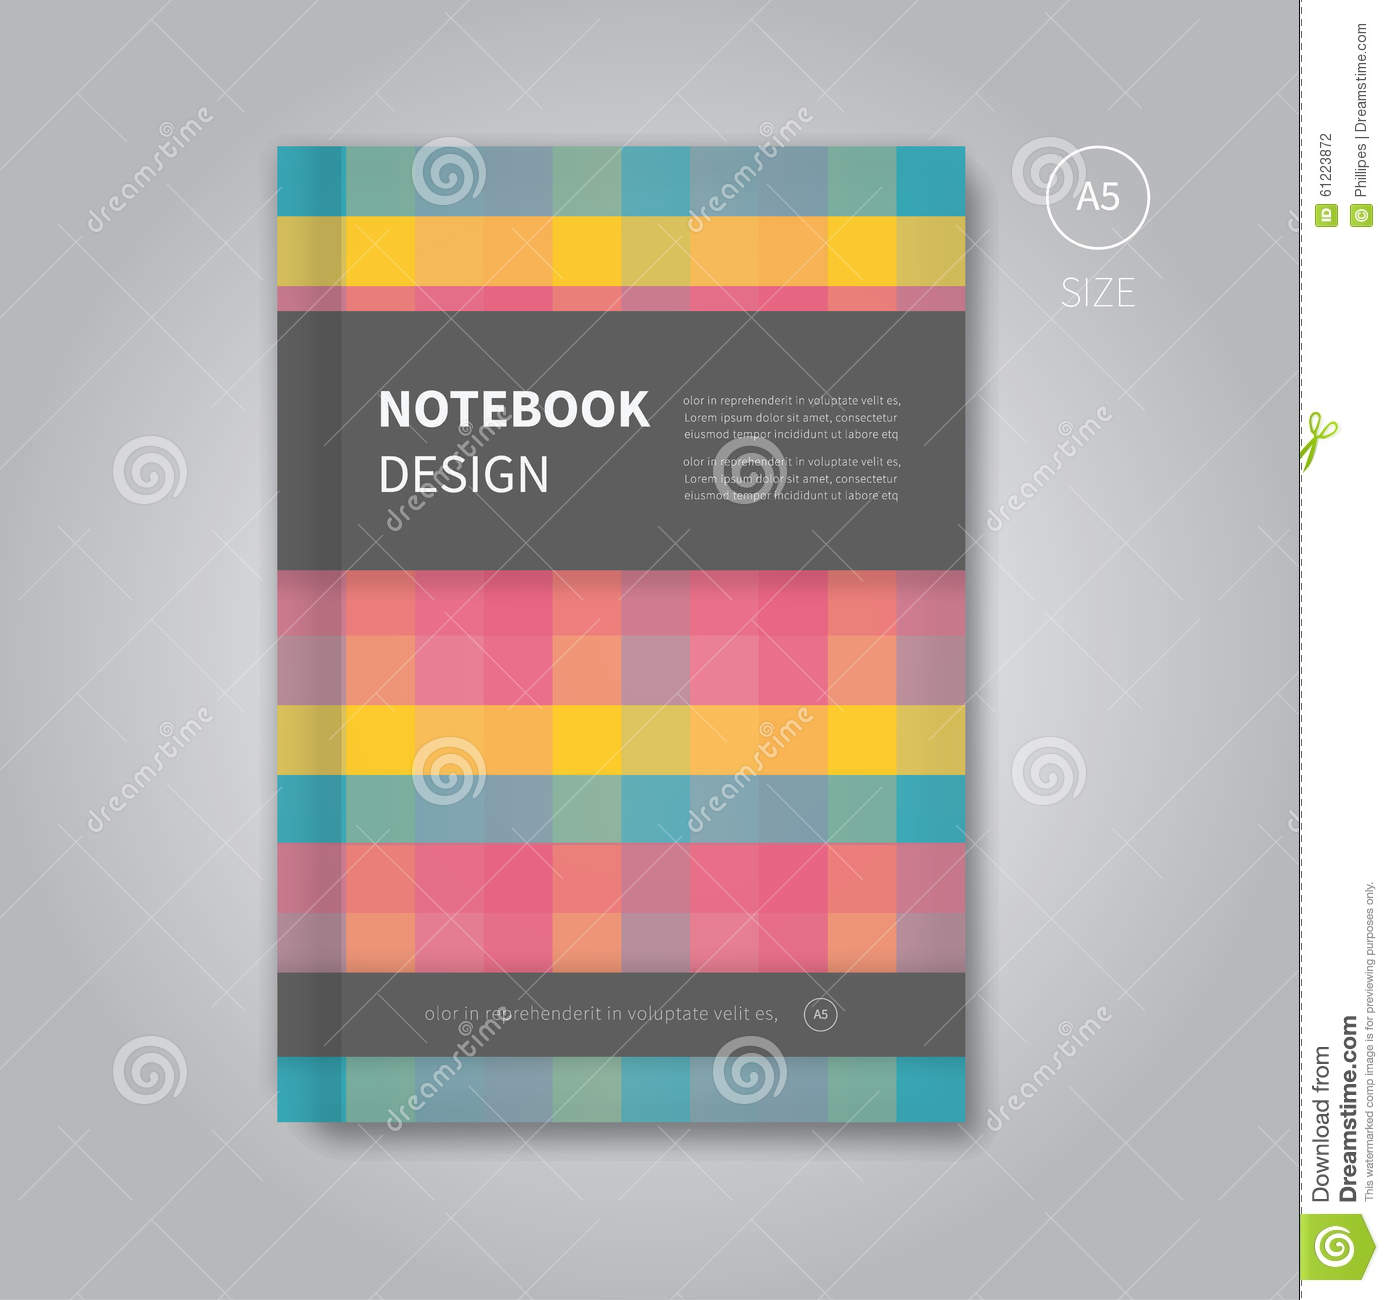 Cover page designs for school projects note book cover page design - Notebook Design In Abstract Style Stock Photography